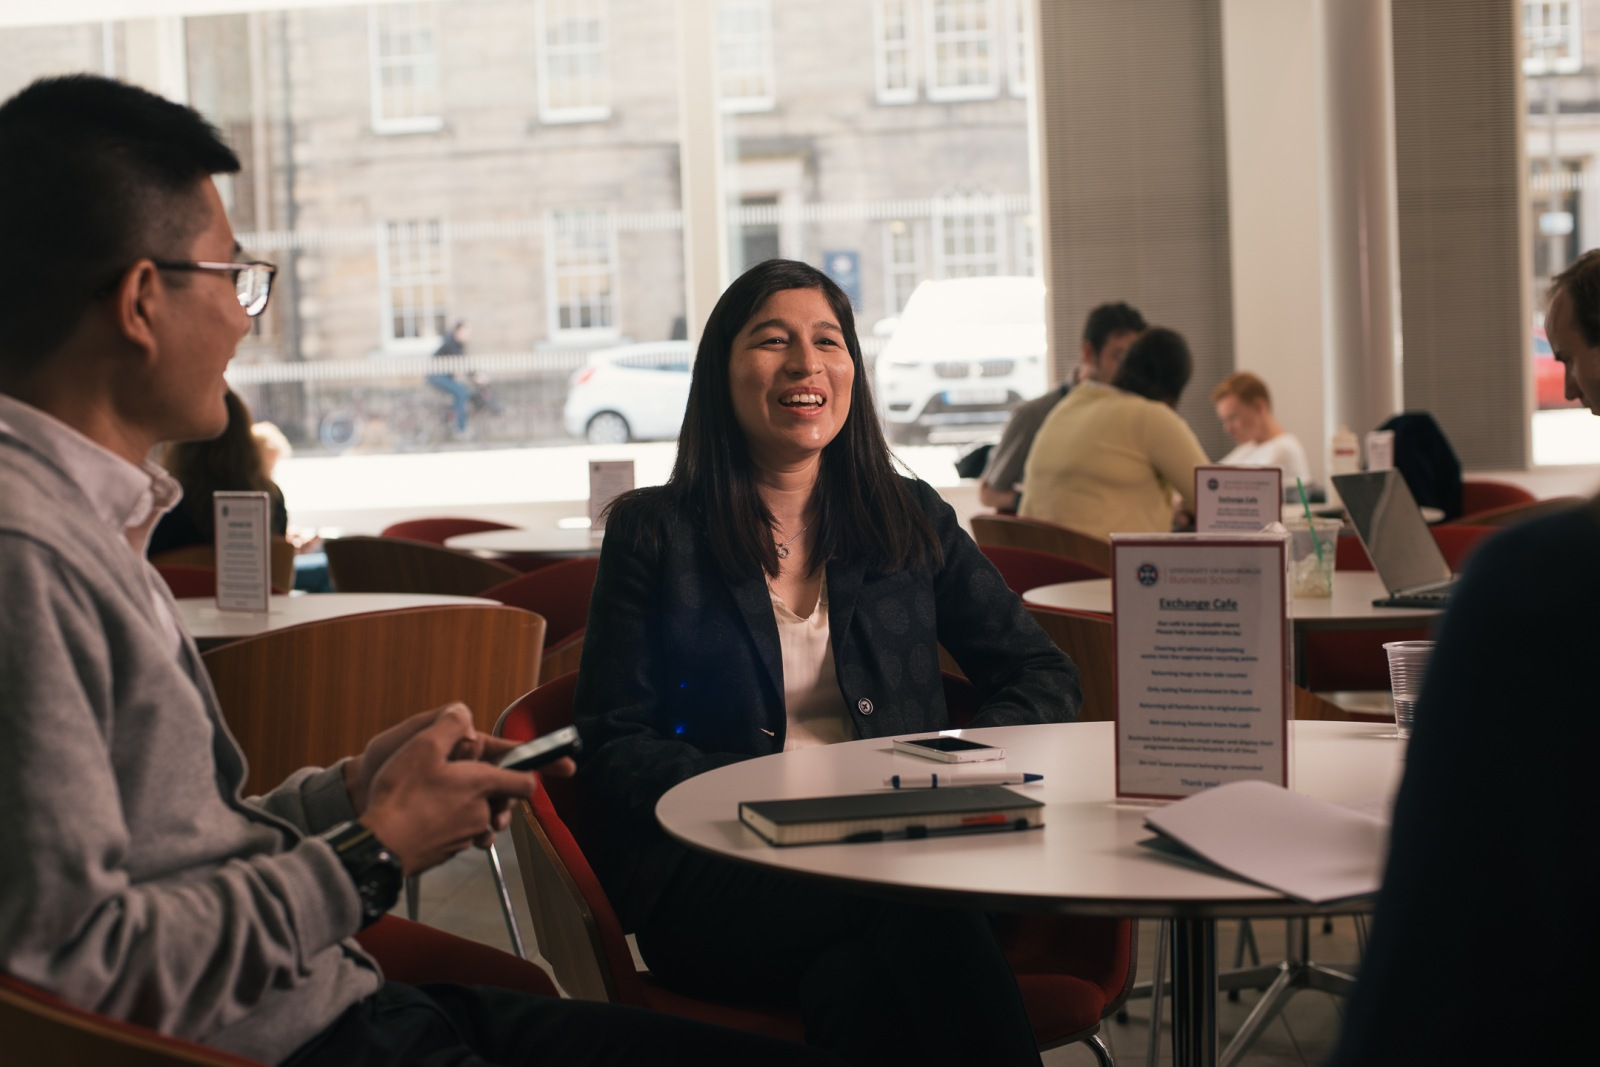 Time Flies: Students at the University of Edinburgh Business School